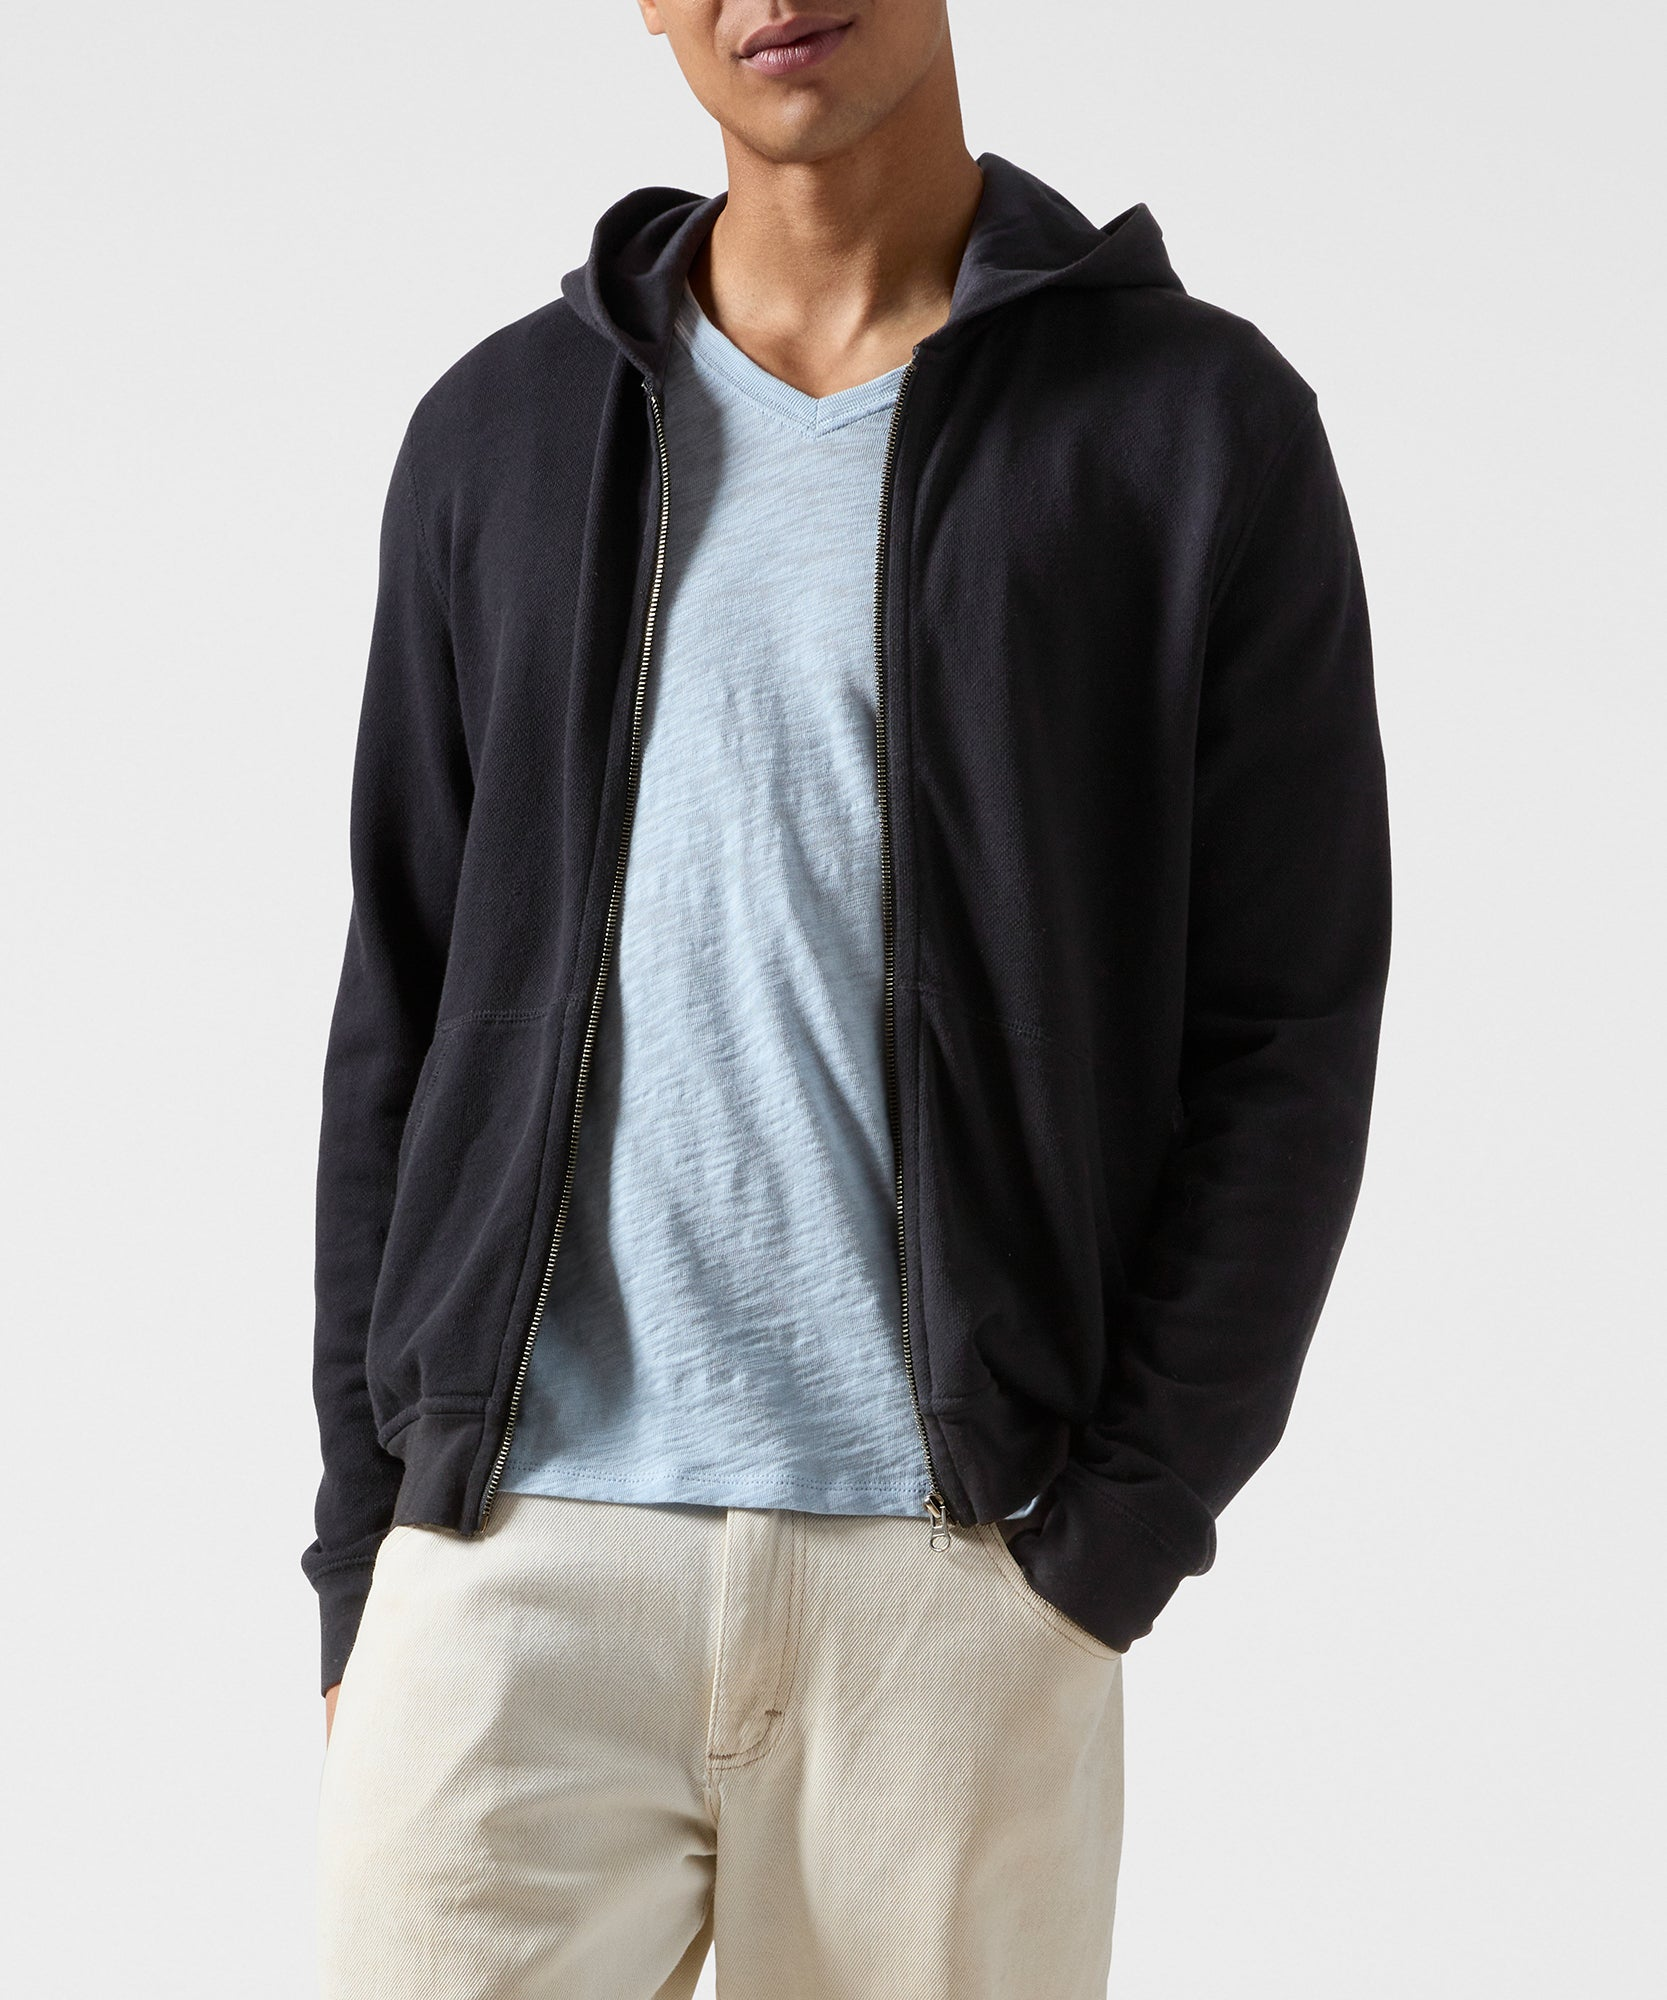 Black French Terry Zip-Up Hoodie - Men's Luxe Loungewear by ATM Anthony Thomas Melillo